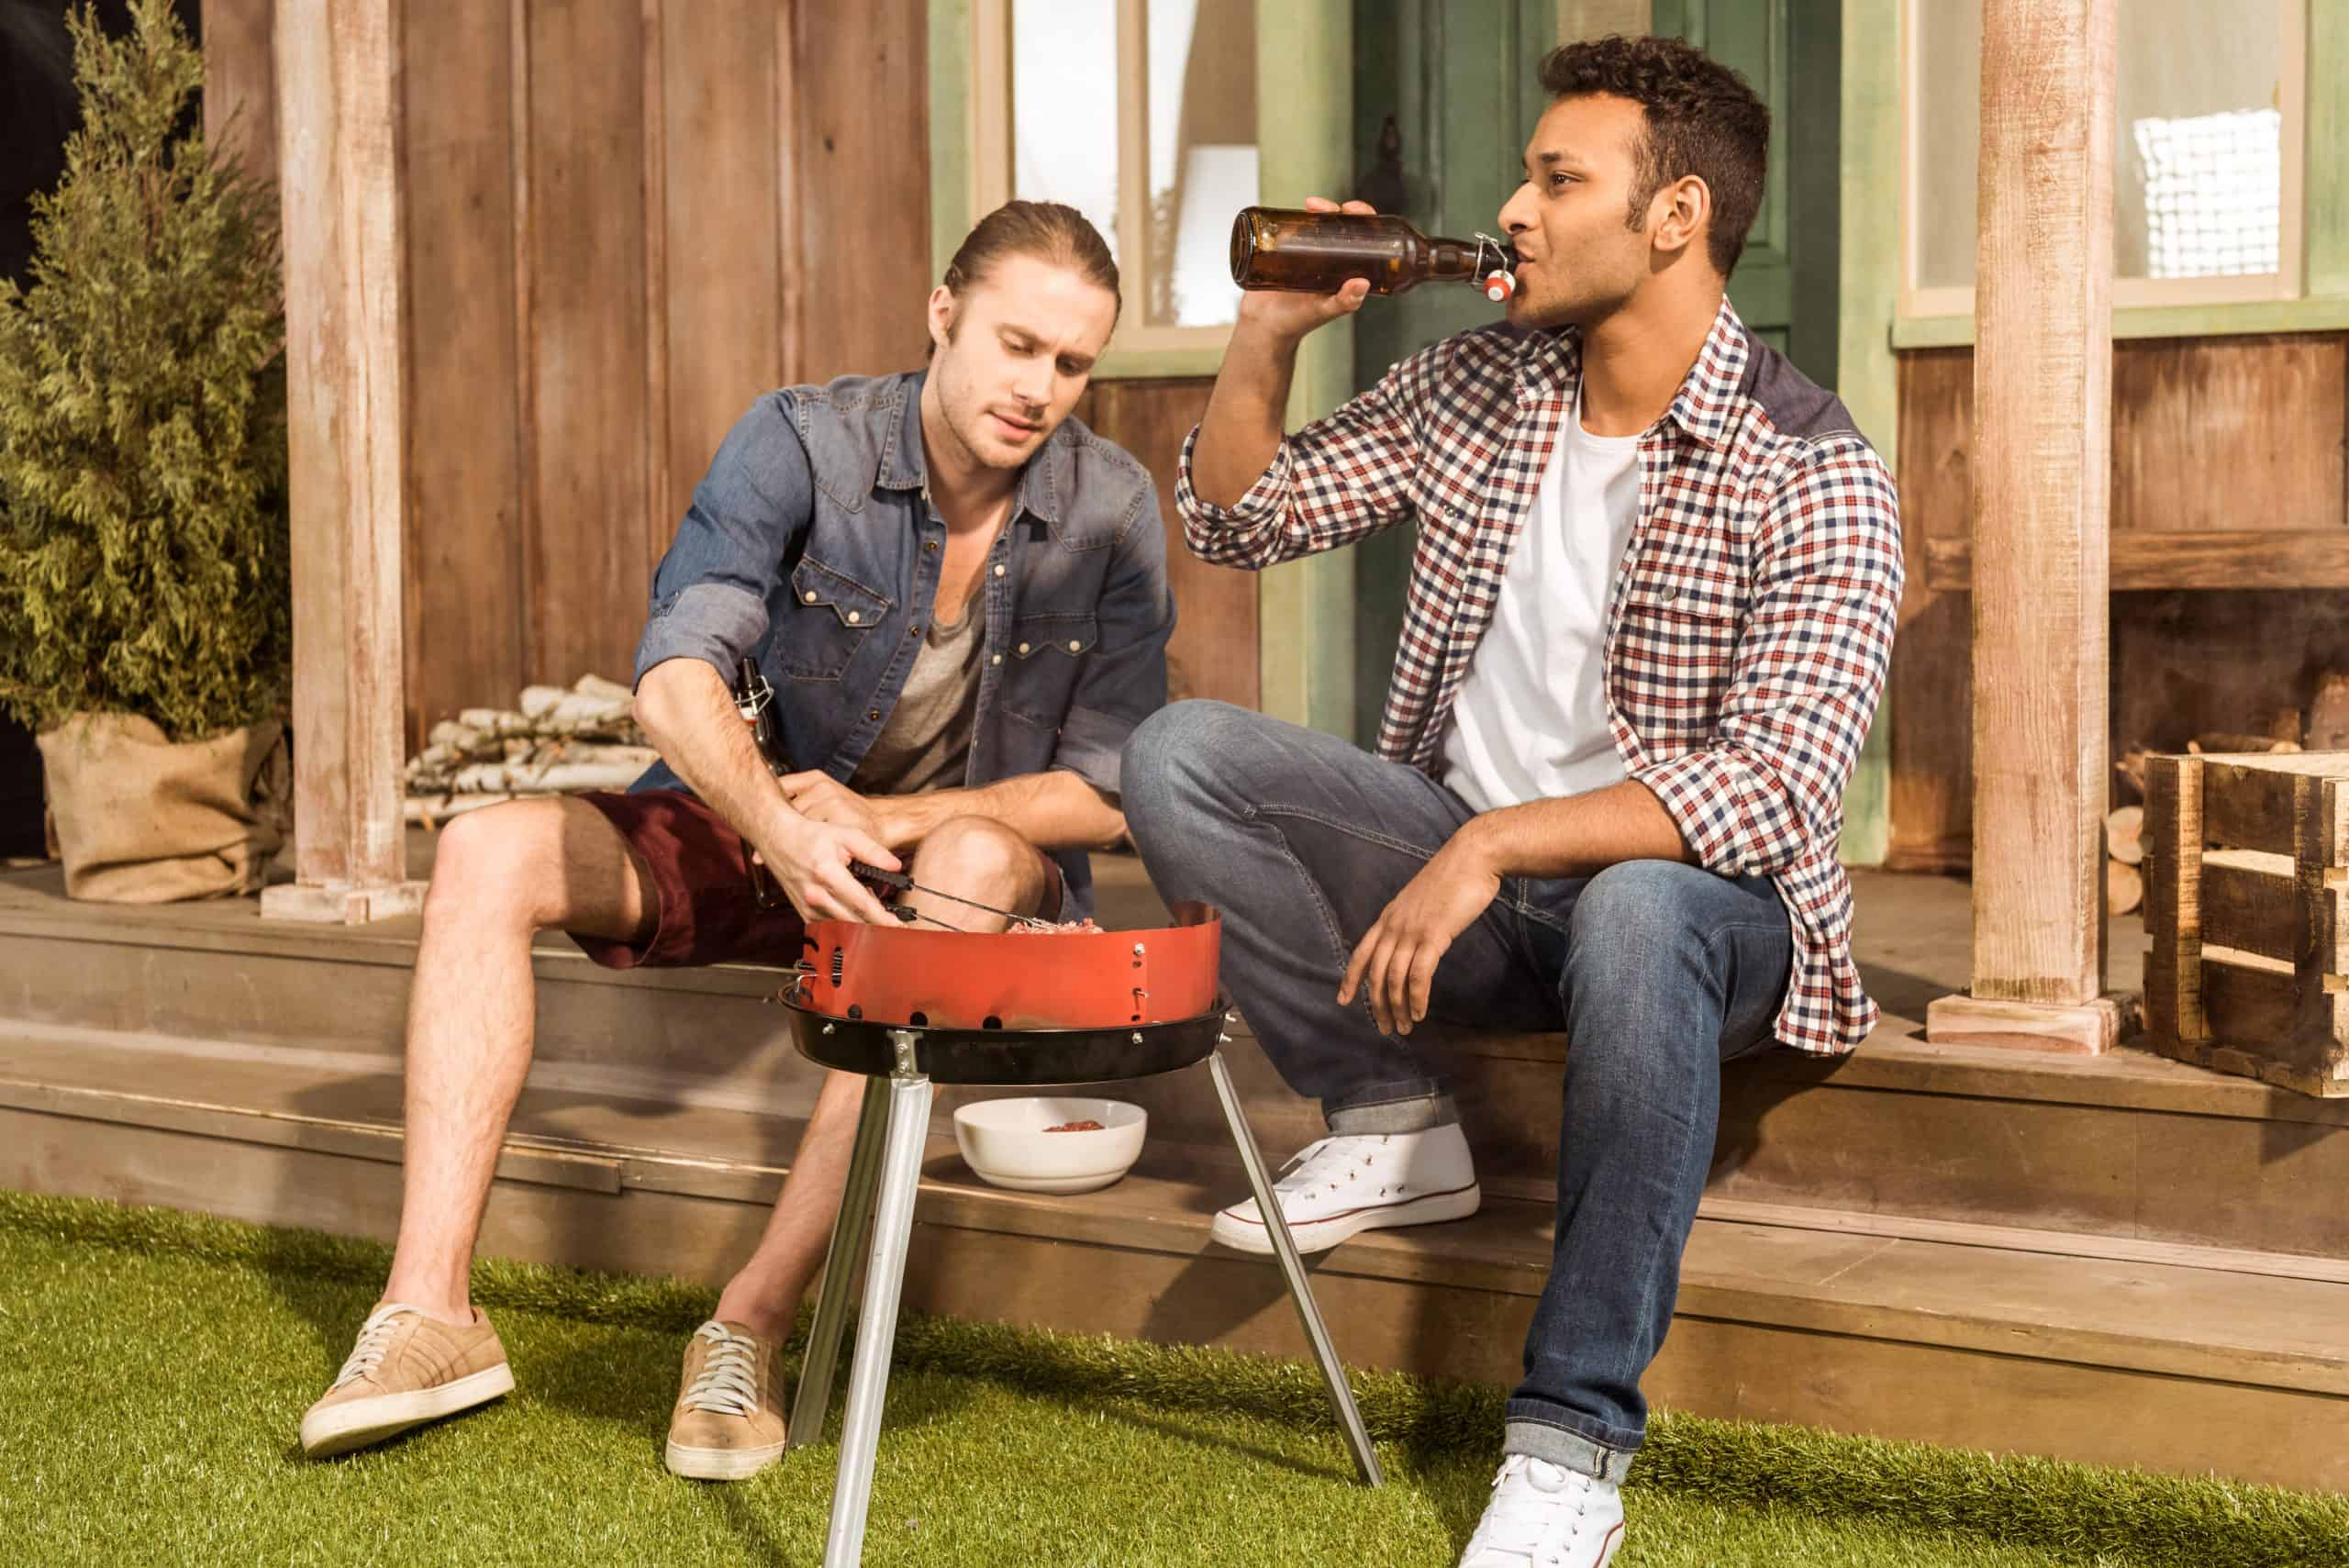 Barbecue safety tips - two men grilling and drinking beer